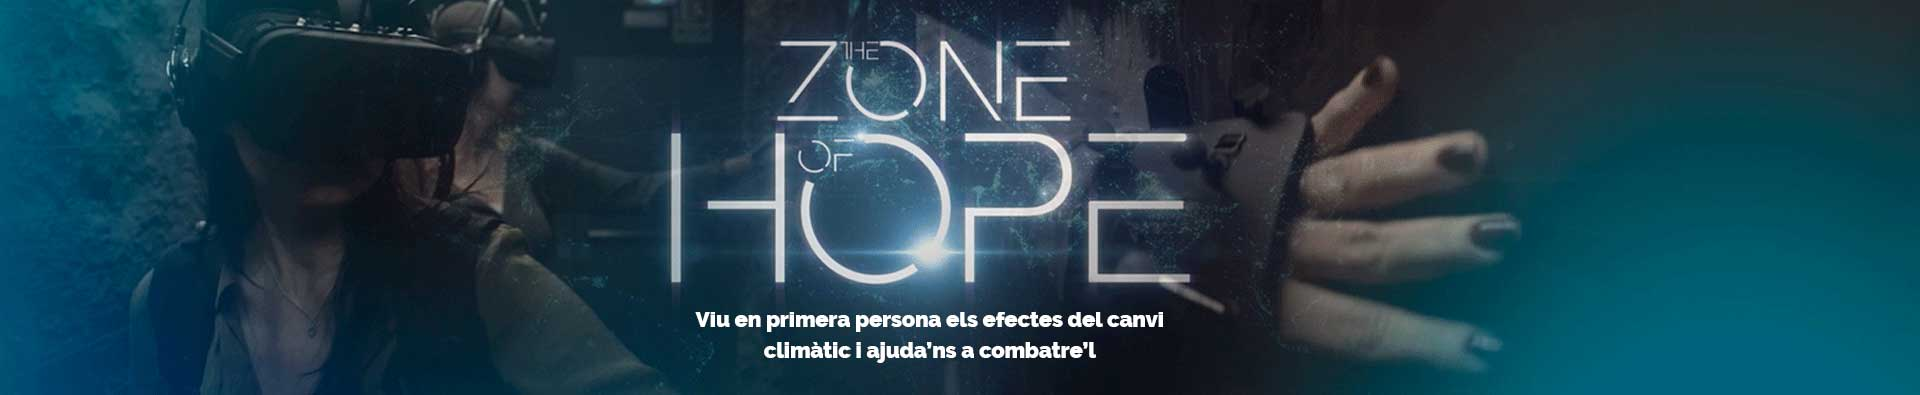 The Zone of Hope